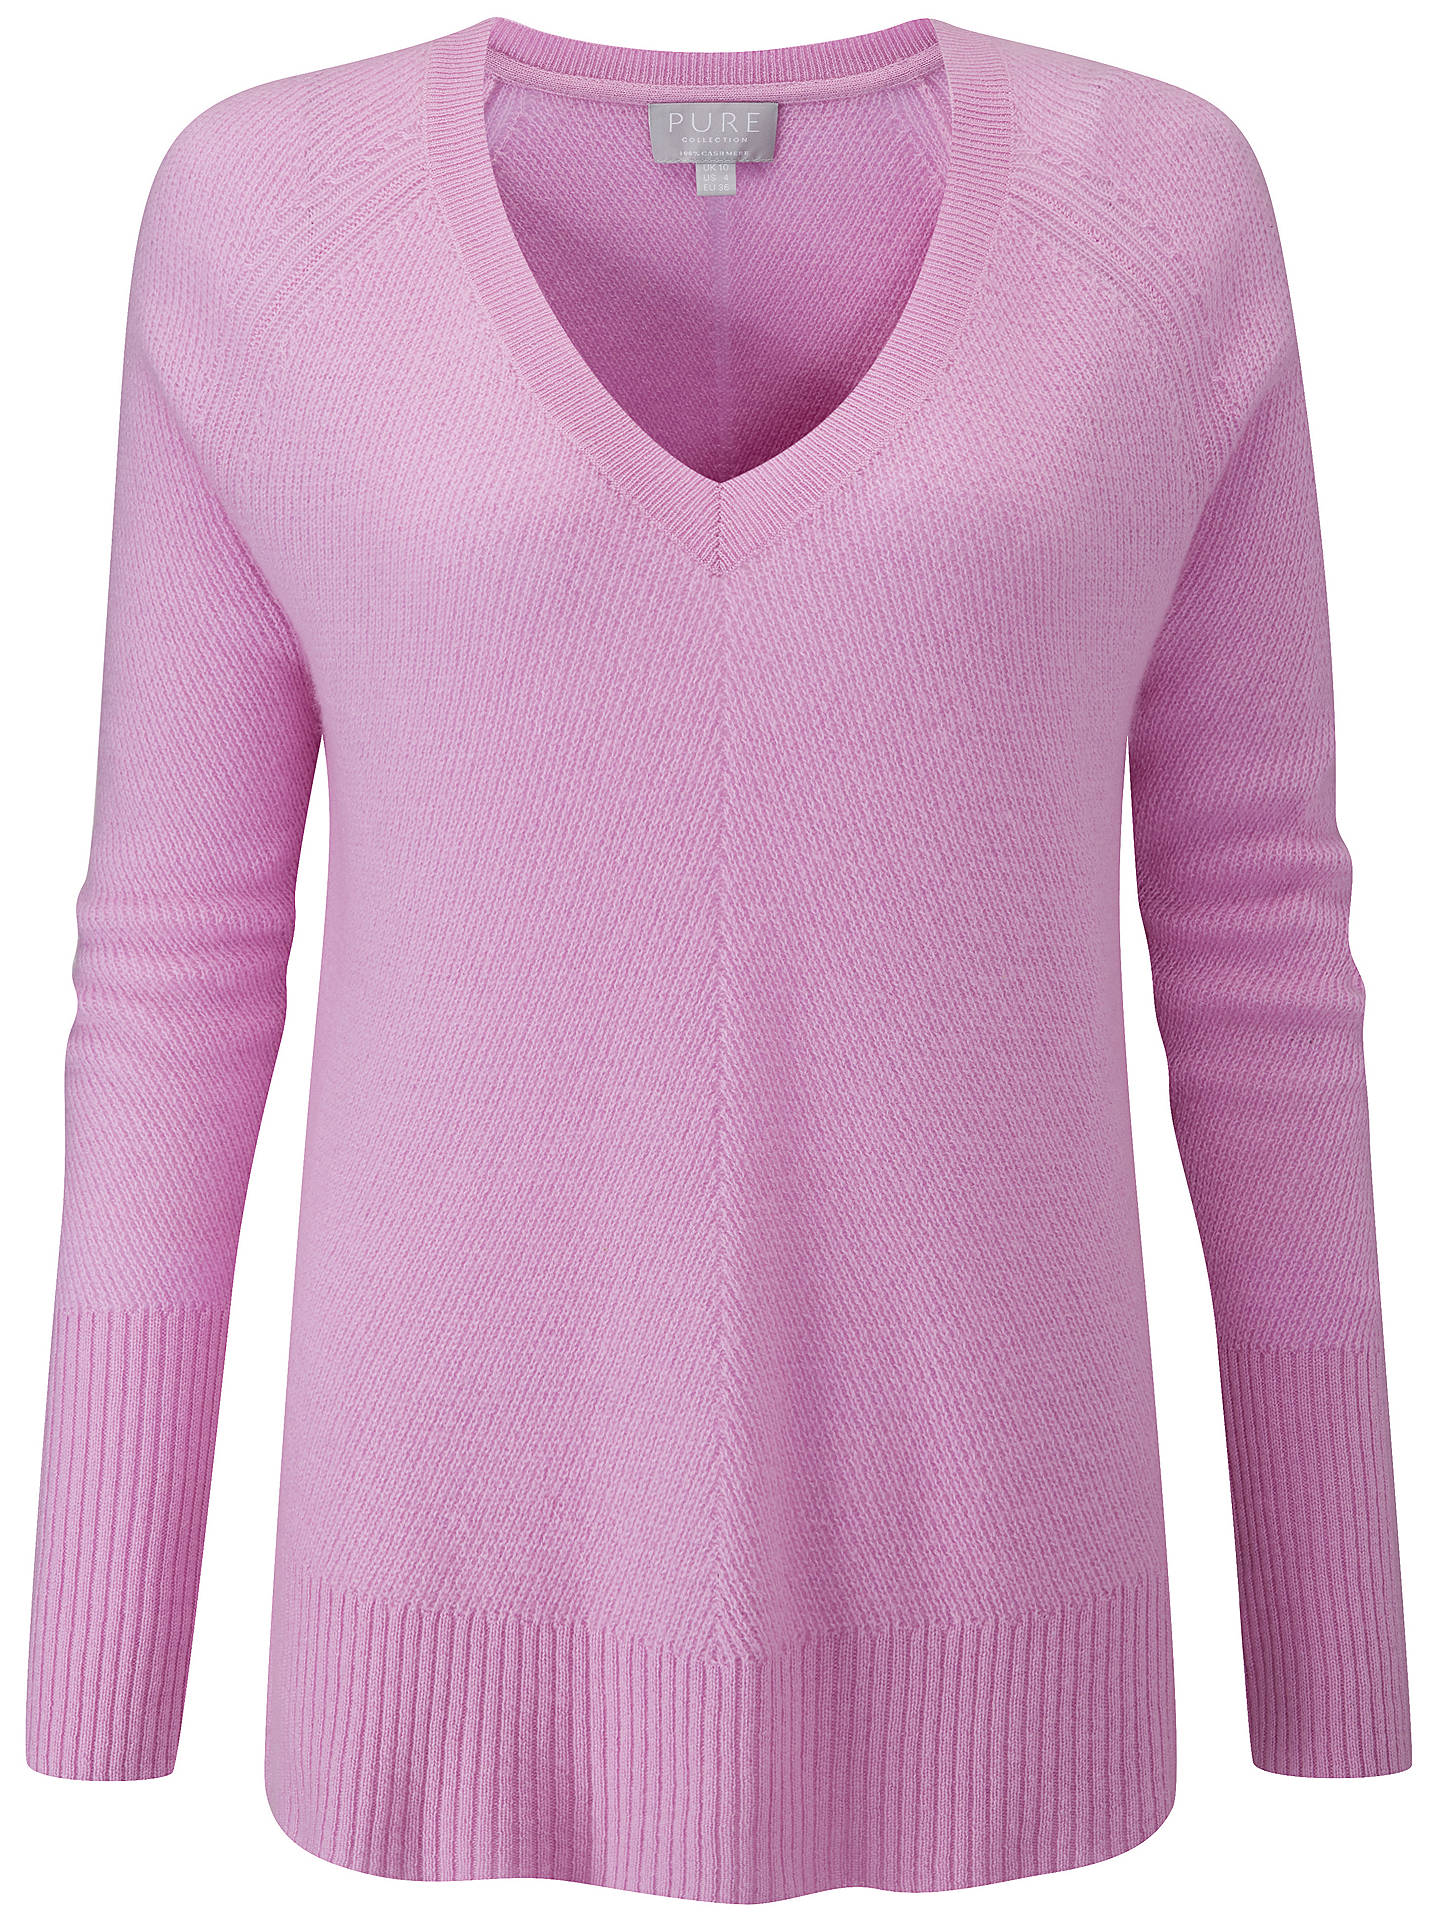 BuyPure Collection Cashmere V-Neck Sweater, Lilac, 10 Online at johnlewis.com